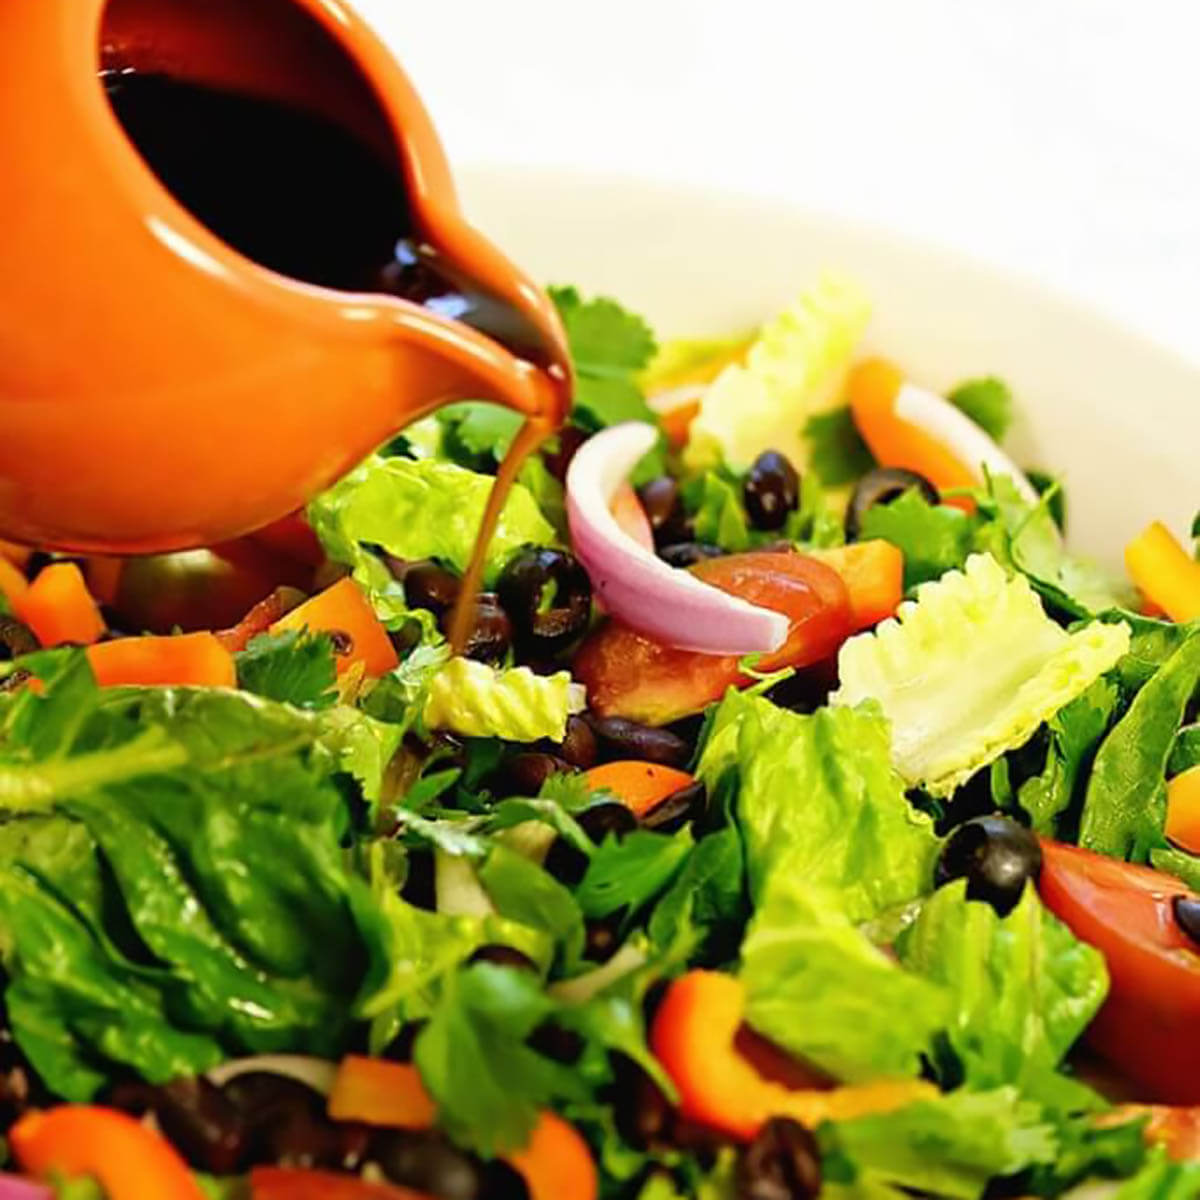 Salad dressing being poured over a green salad.